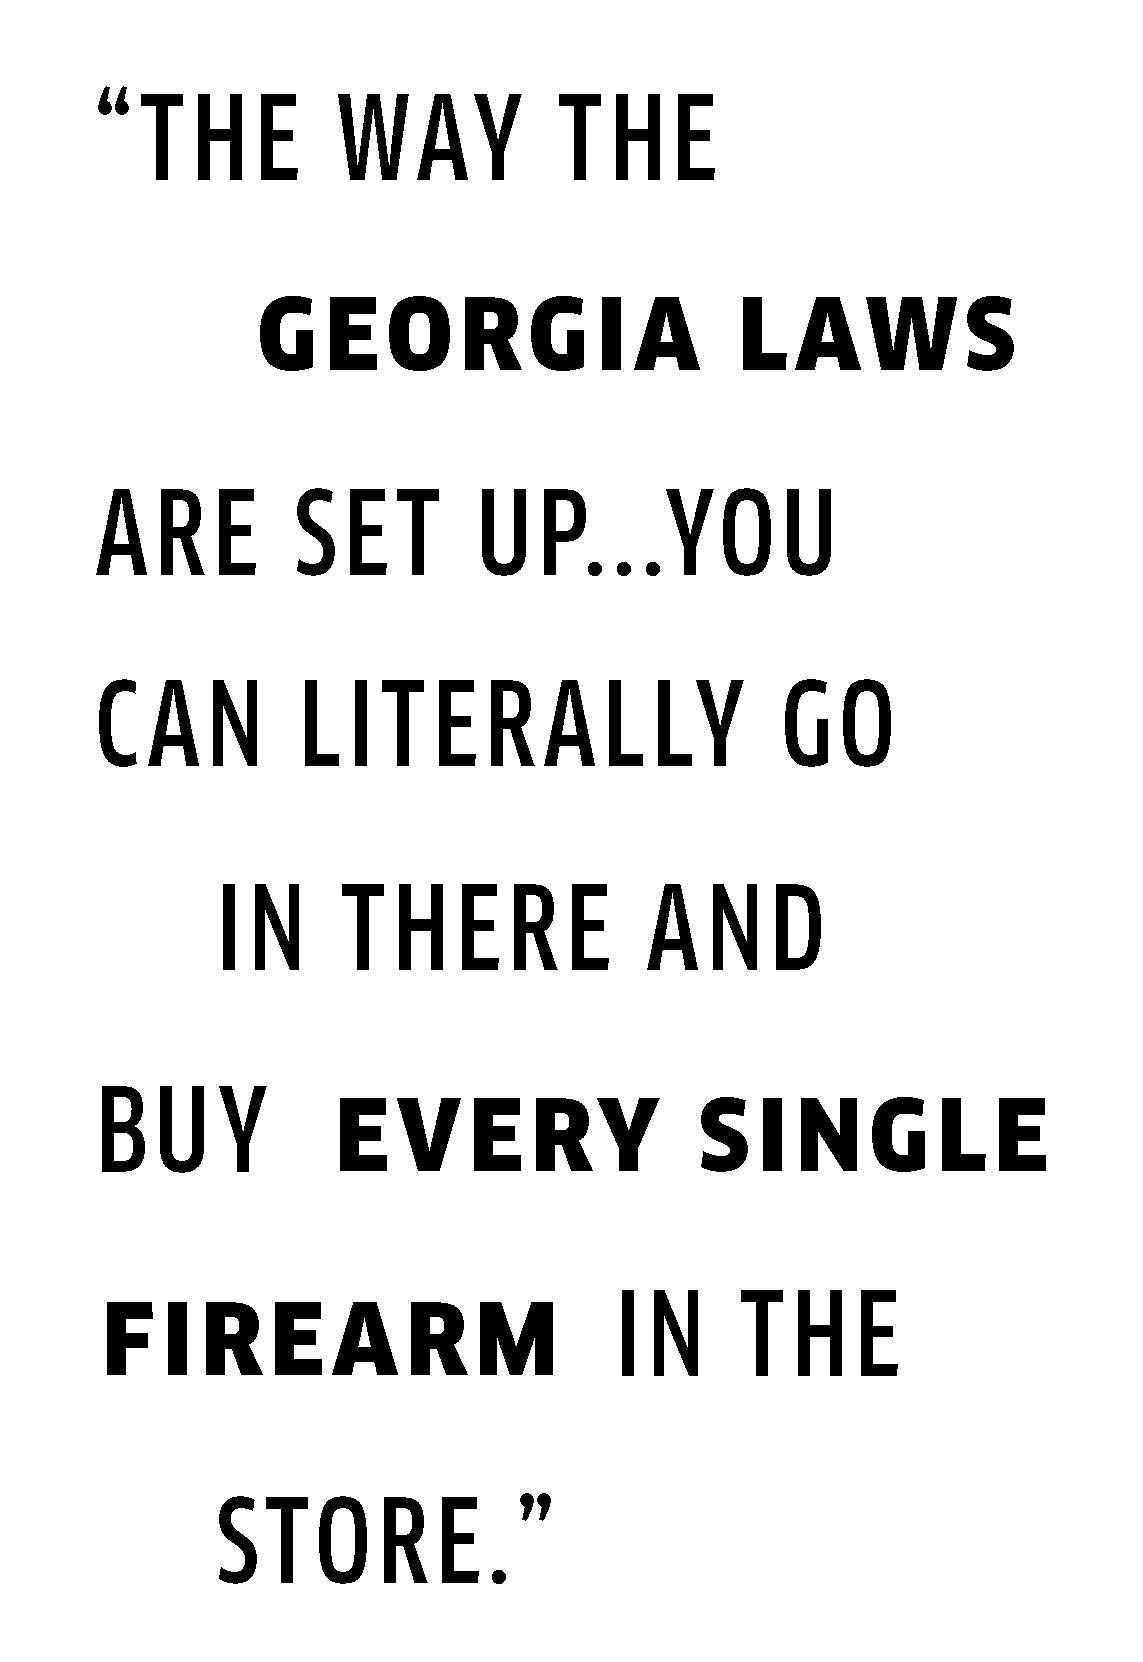 the way the georgia laws are set up...you can literally go in there and buy every single firearm in the store.